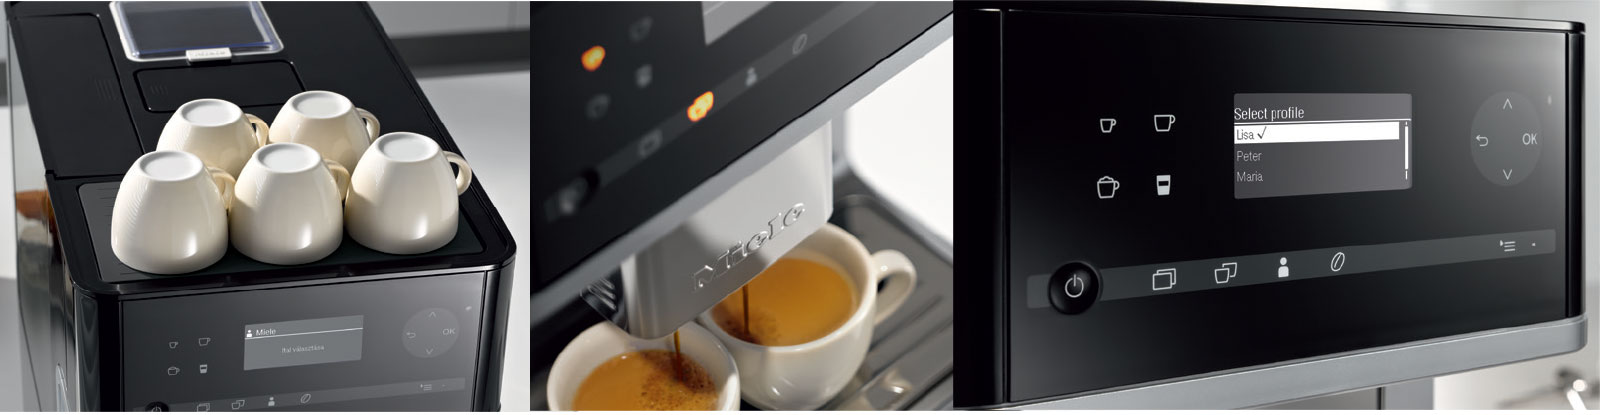 Miele-CM6 Coffee Espresso Machine System